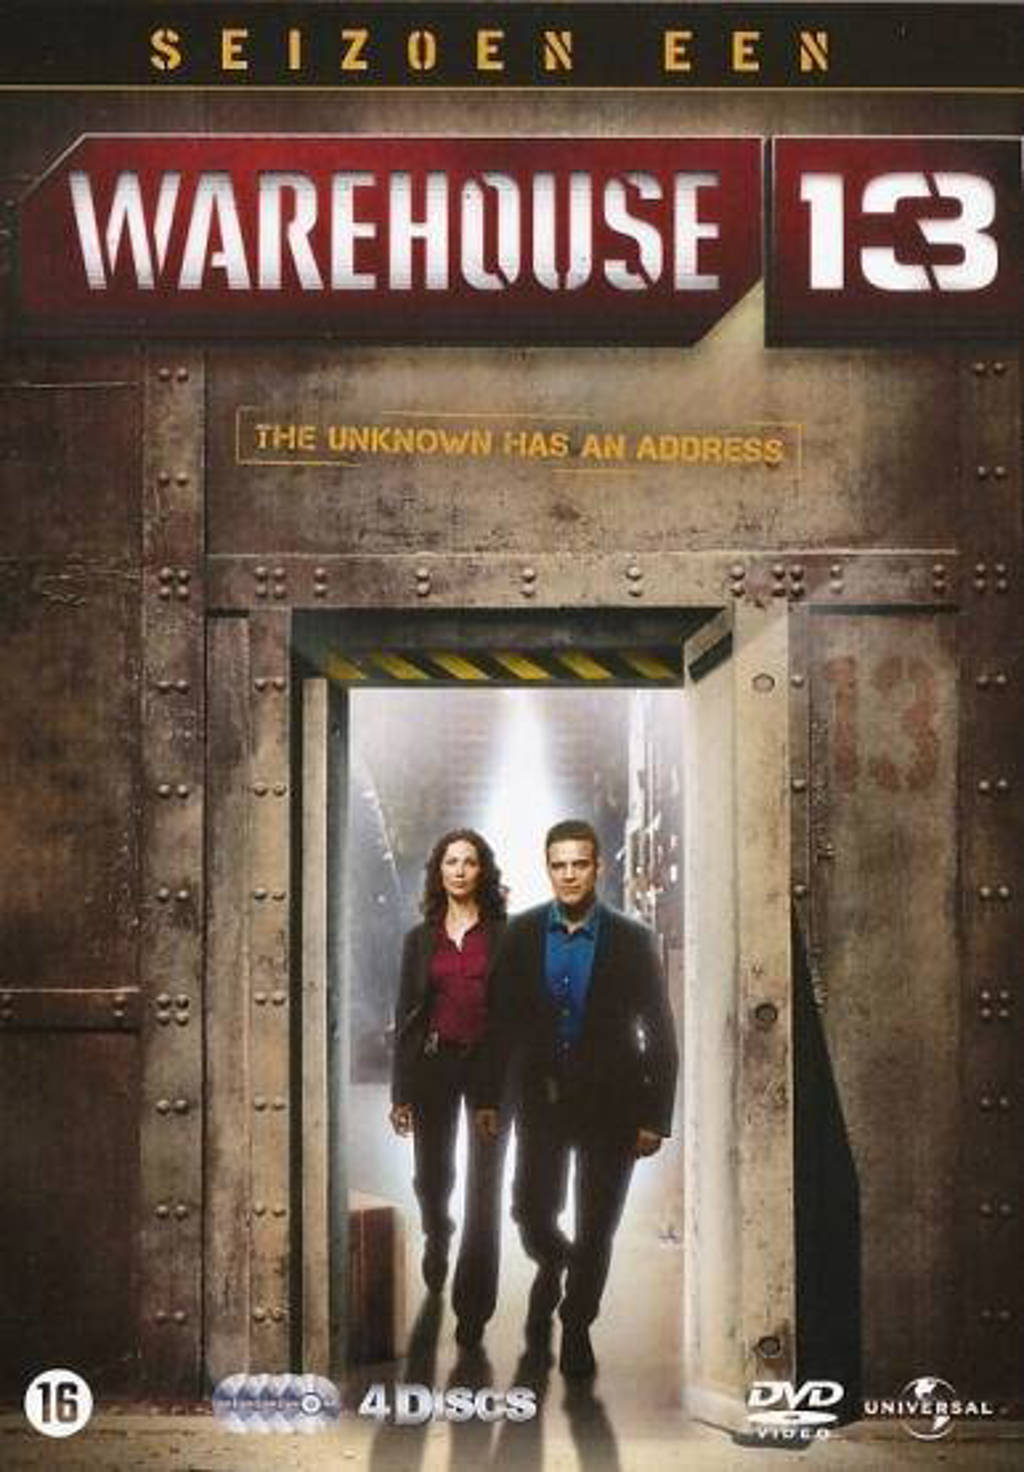 Warehouse 13 - Seizoen 1 (DVD)